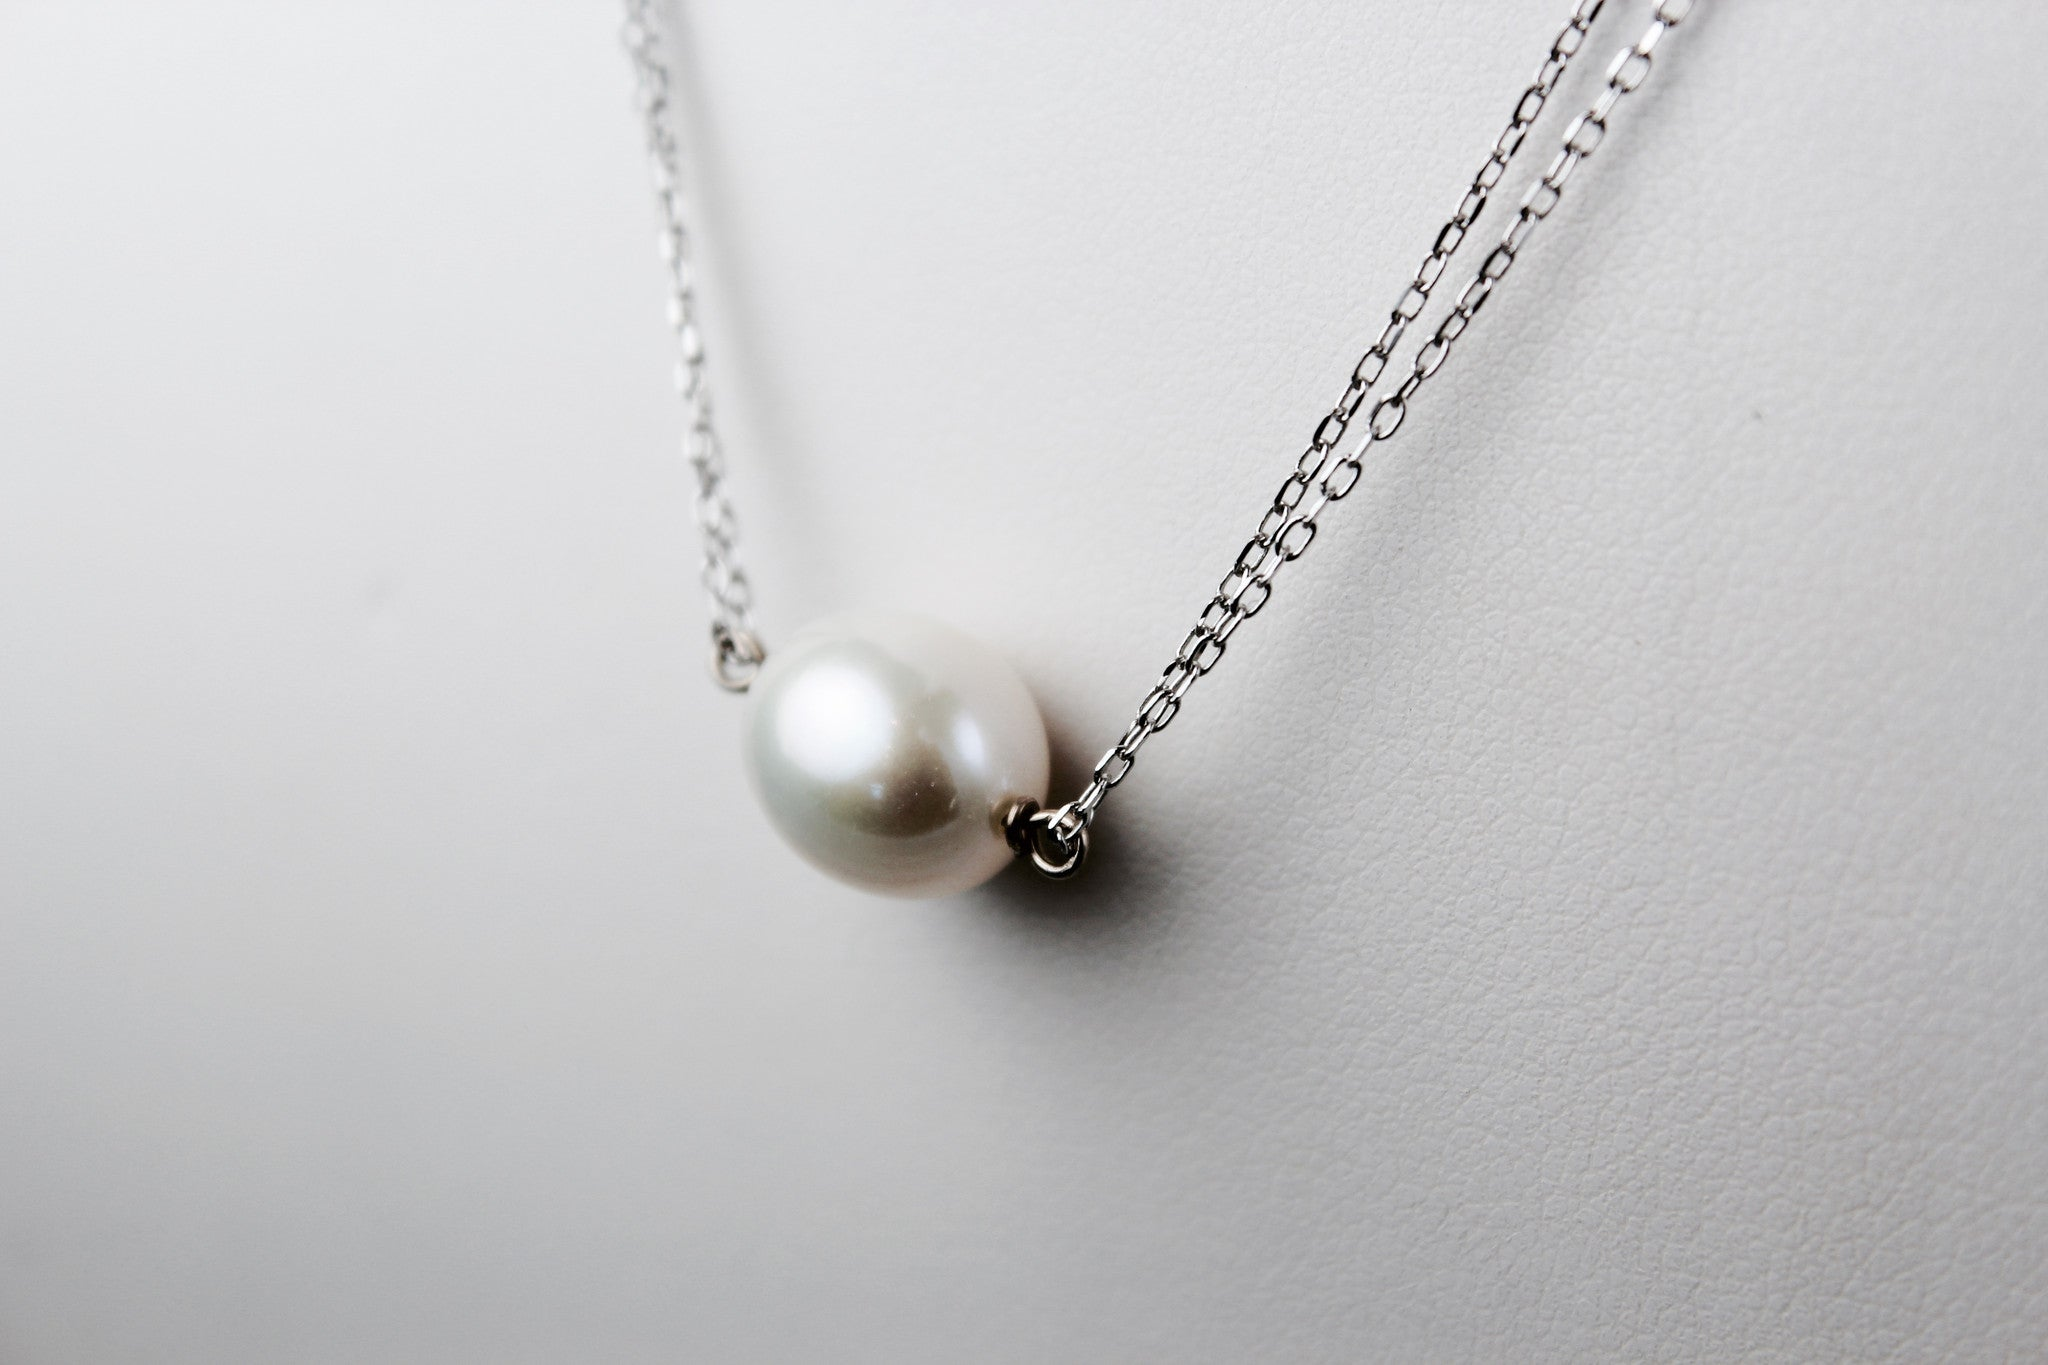 necklace jewelry pearl pin choker bridesmaid single leather